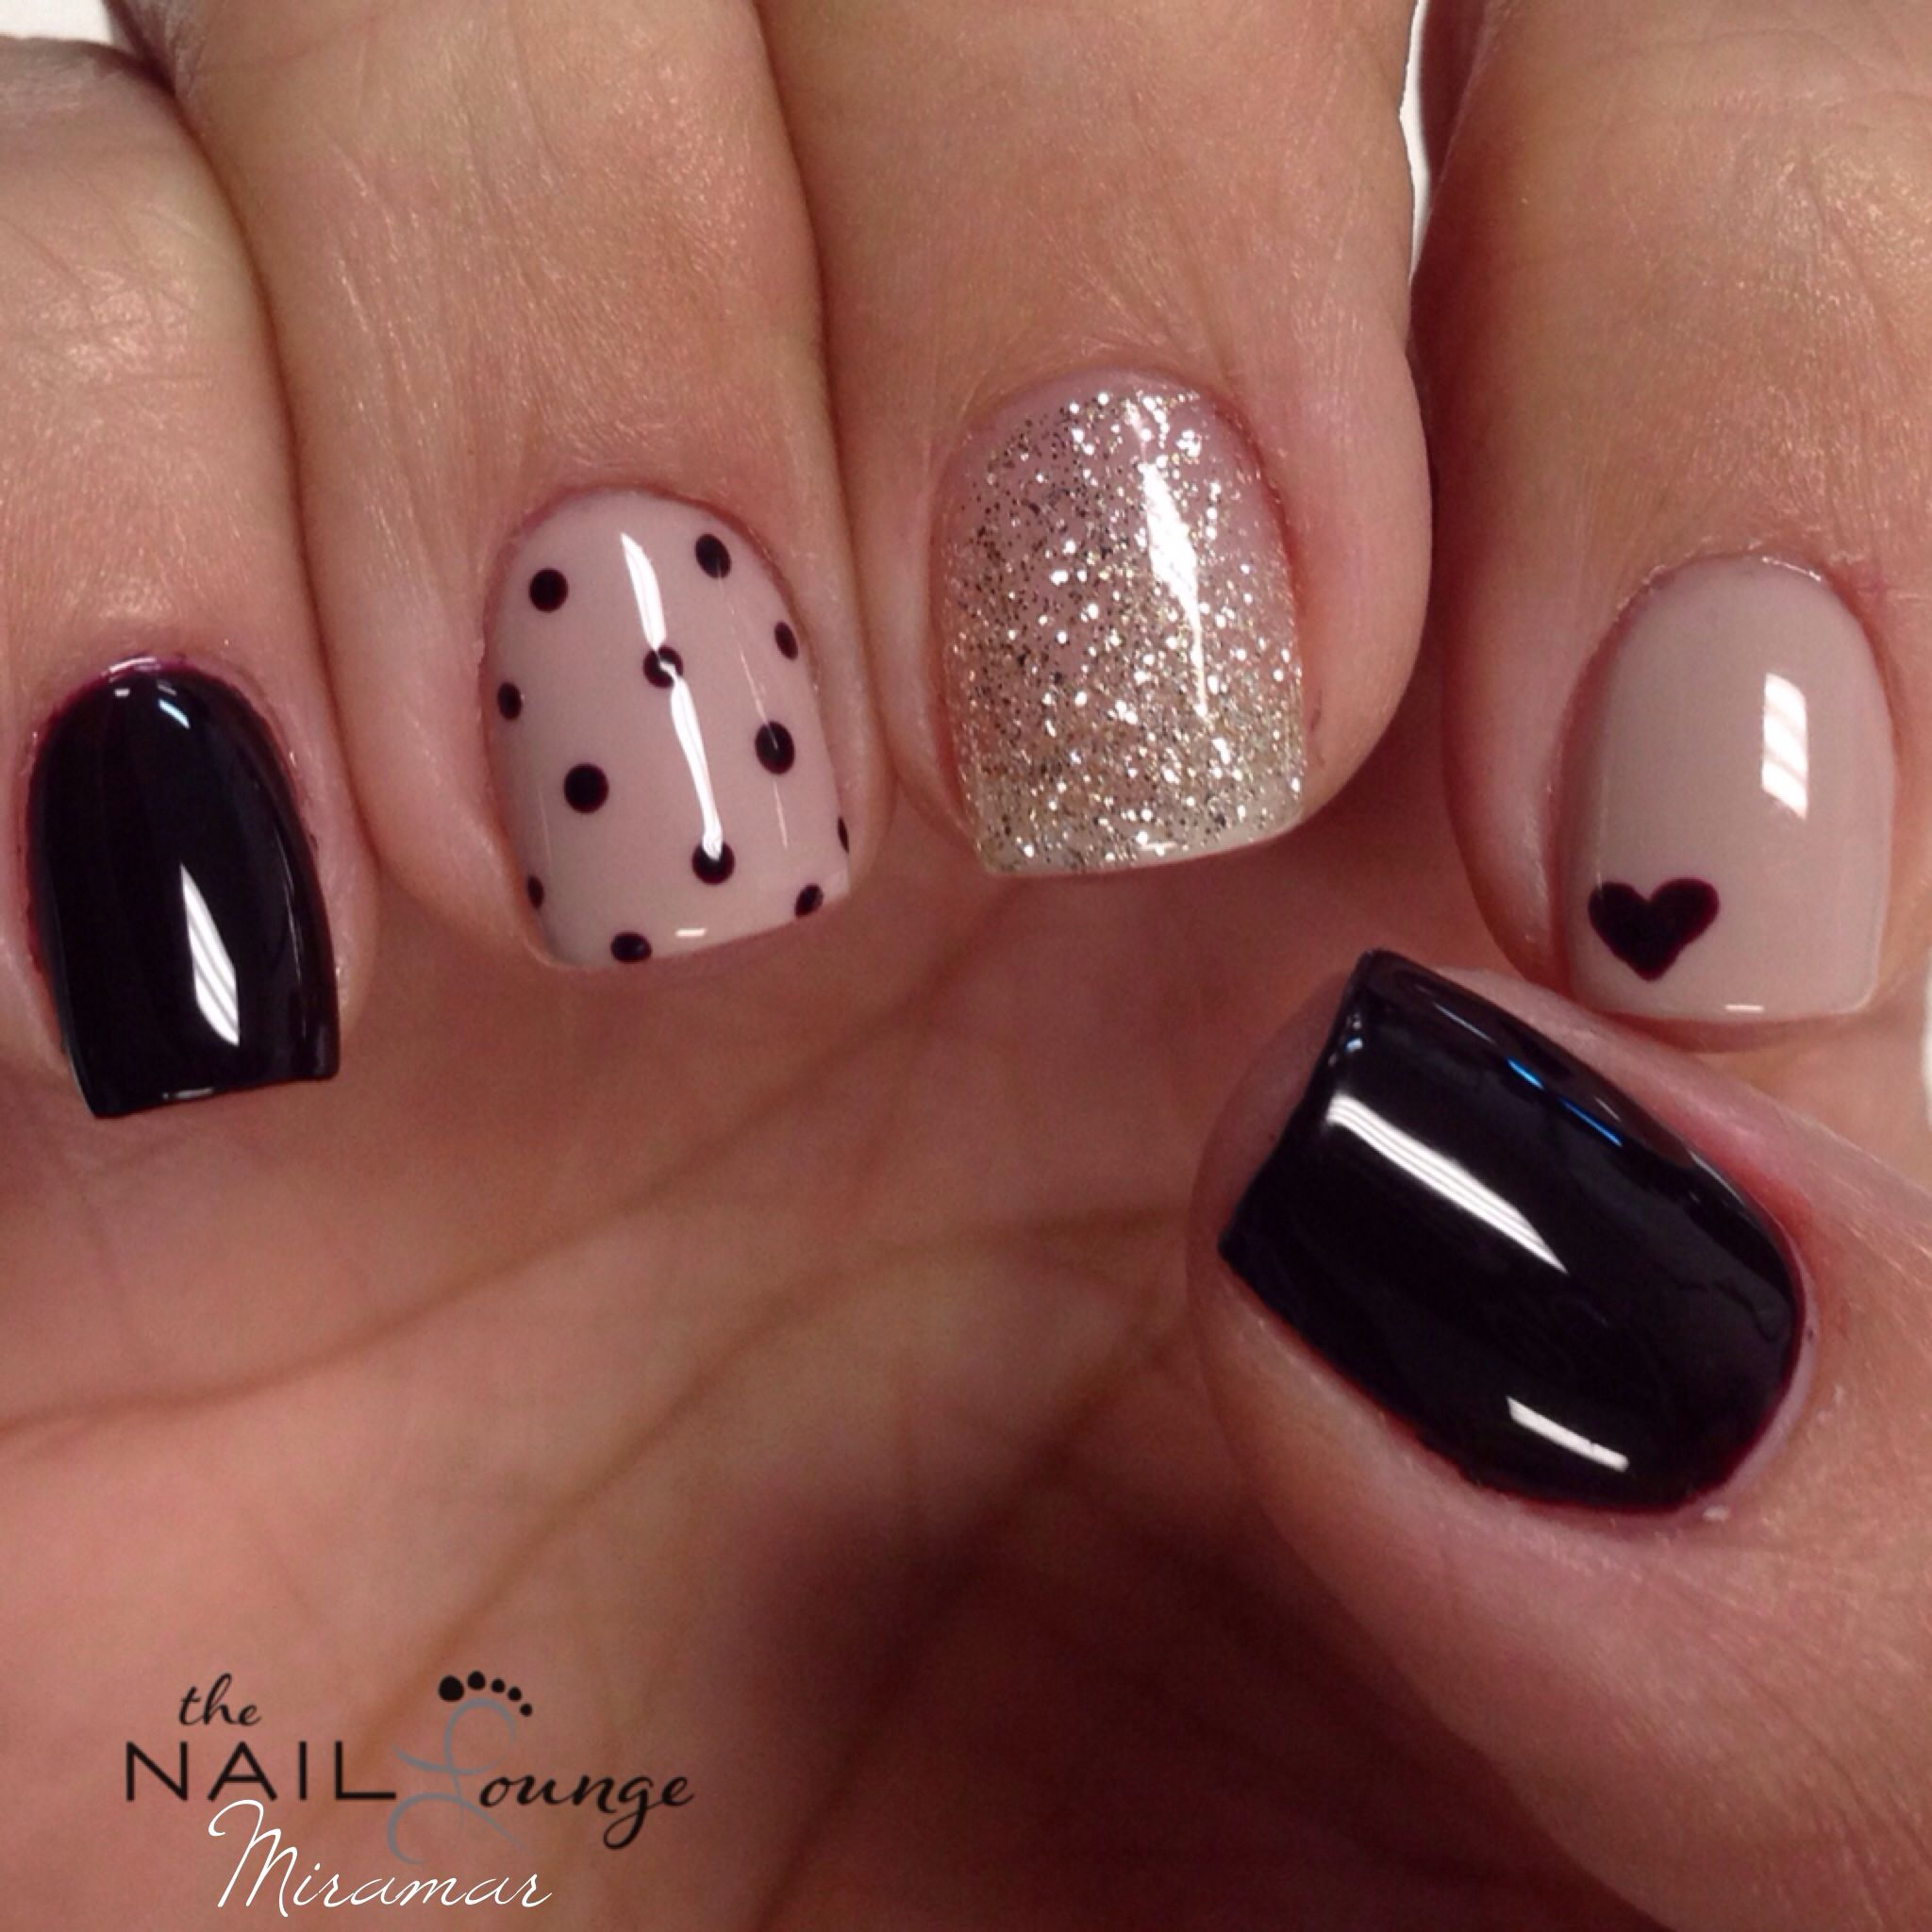 @the_nail_lounge_miramar heart nail art design Discover and share your nail design ideas on www.popmiss.com/nail-designs/